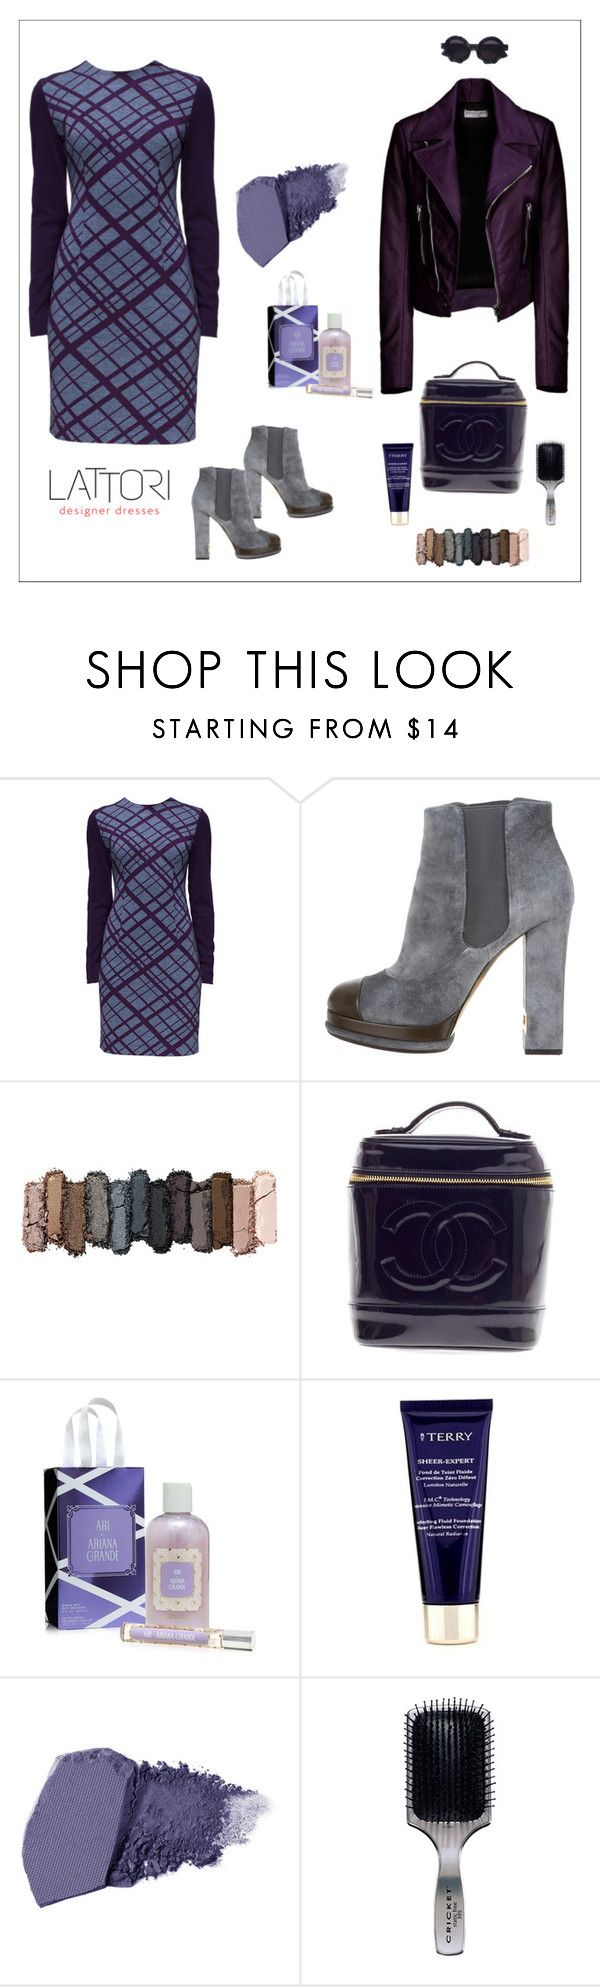 """""""'Calm Curves' Long Sleeves, Knitted Casual Dress"""" by lattori ❤ liked on Polyvore featuring Lattori, Balenciaga, Chanel, Urban Decay, By Terry, Jane Iredale, Cricket, Kuboraum, dress and dresses"""